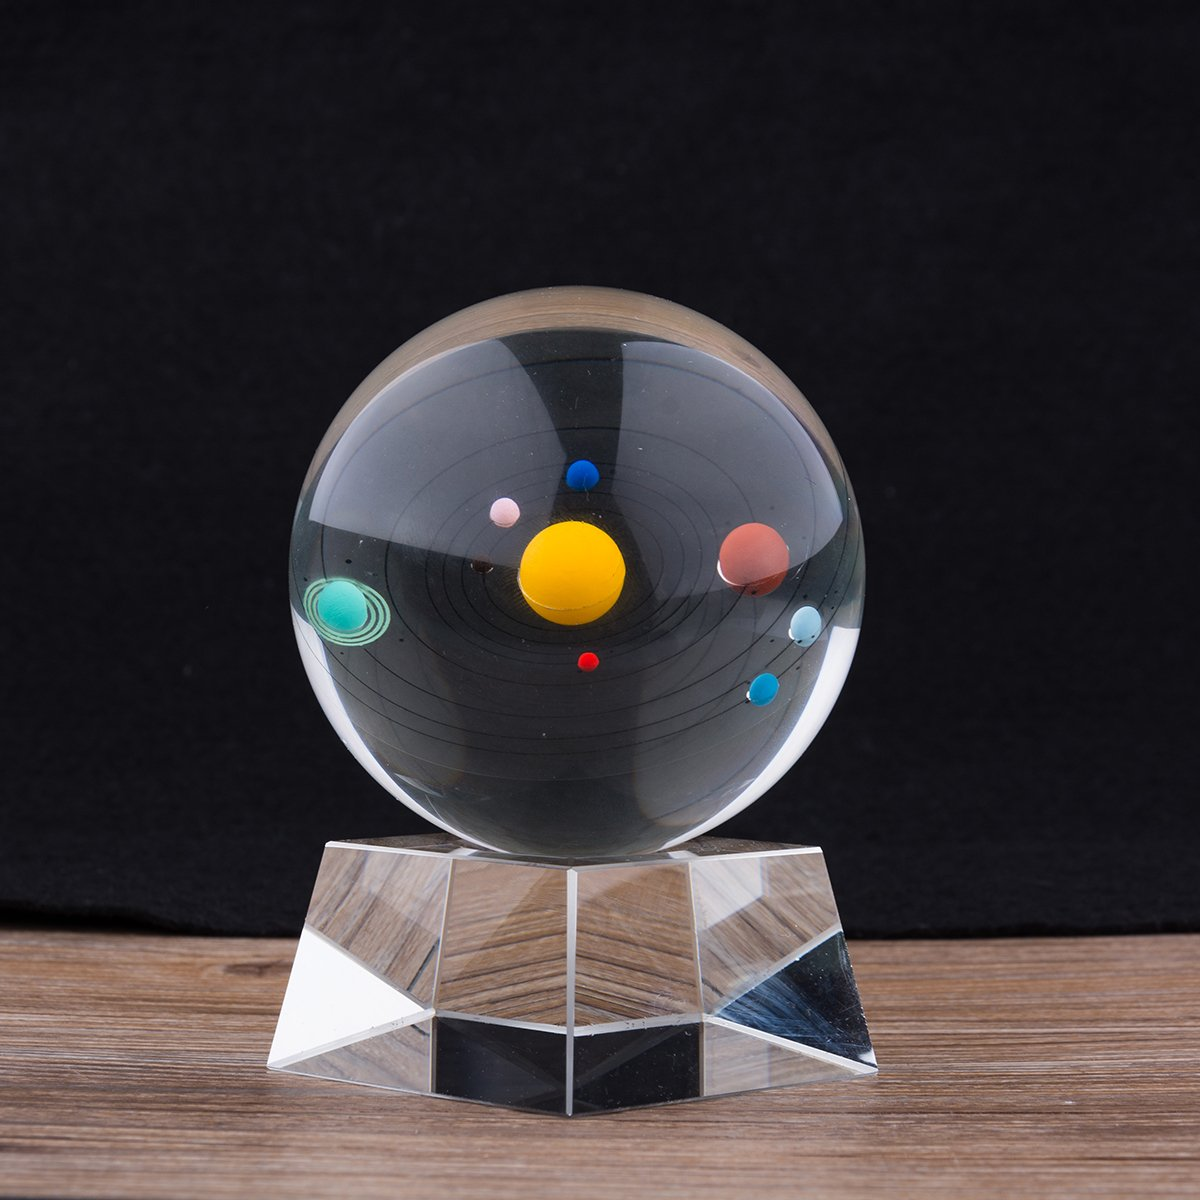 LONGWIN Solar System Model Crystal Ball 3D Clear 80mm (3.15 inch) Glass Planet Balls Photography with Crystal Base by LONGWIN (Image #1)